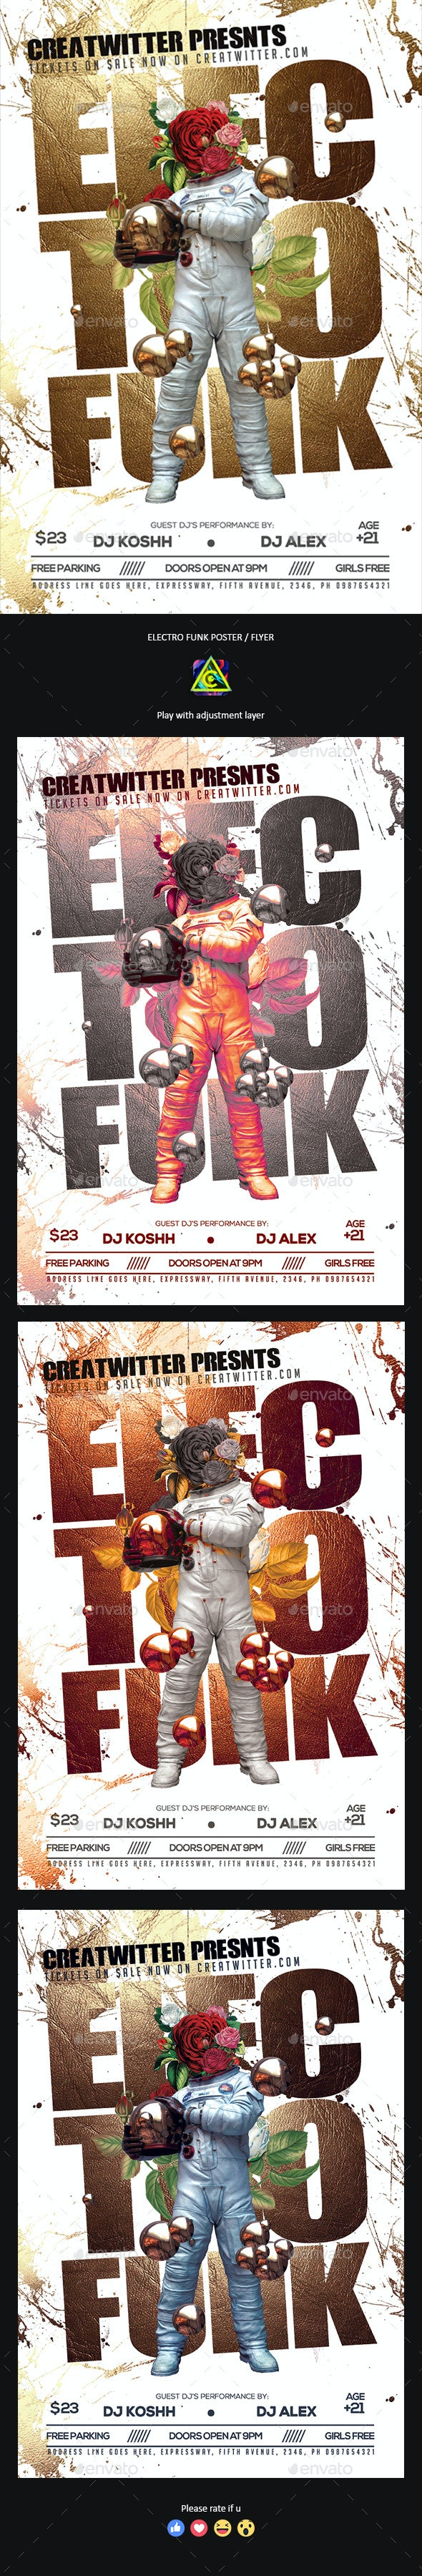 Electro Funk Party Poster / Flyer - Clubs & Parties Events